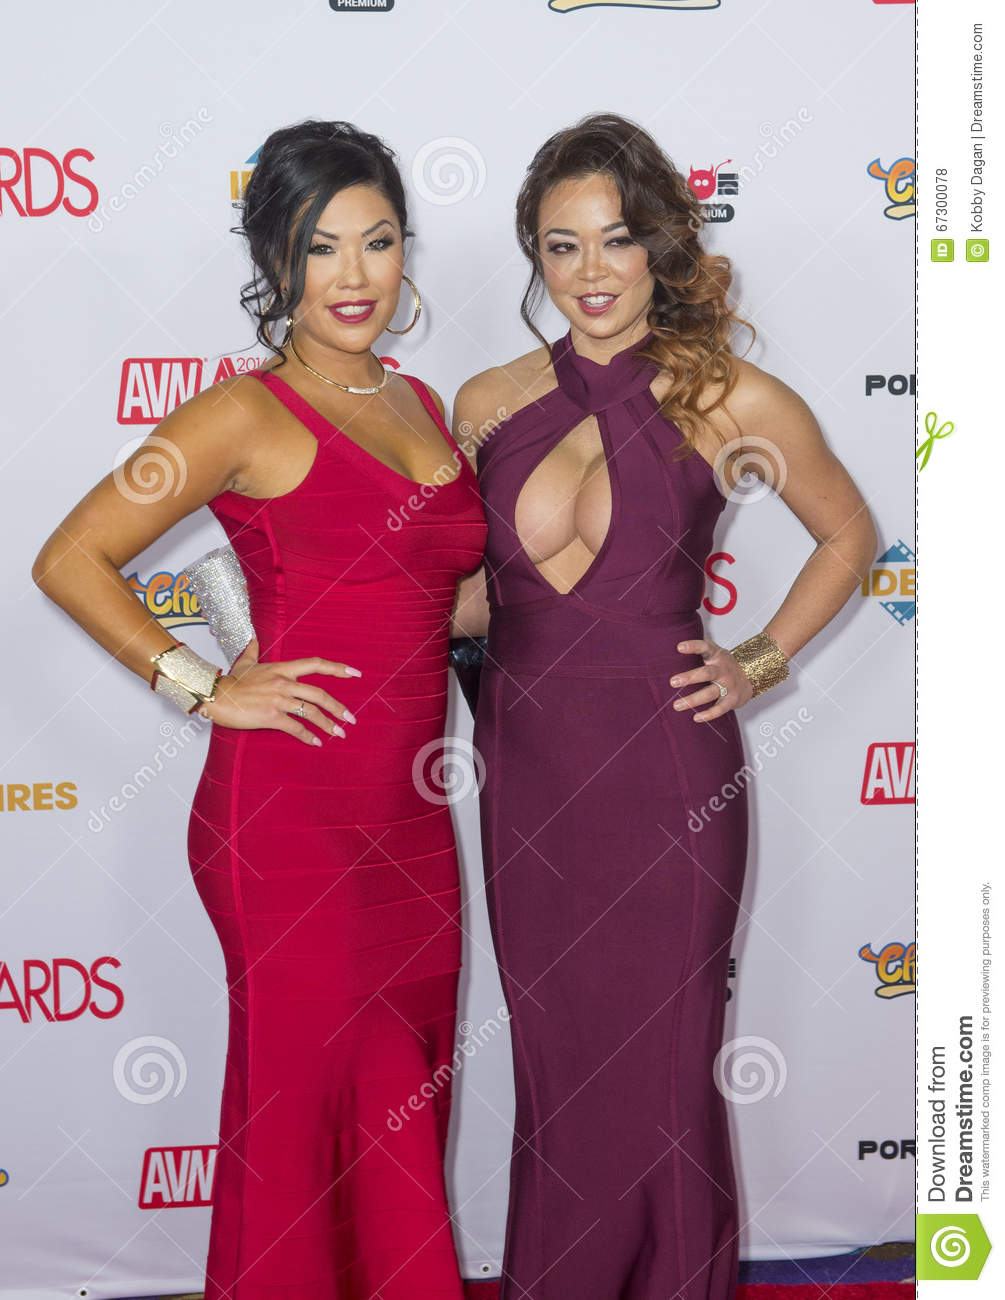 keyes adult sex dating Adult star london keyes on getting her start sleeping w/ black guys threesomes dating women pulling a gun on someone during sex w pvnch.